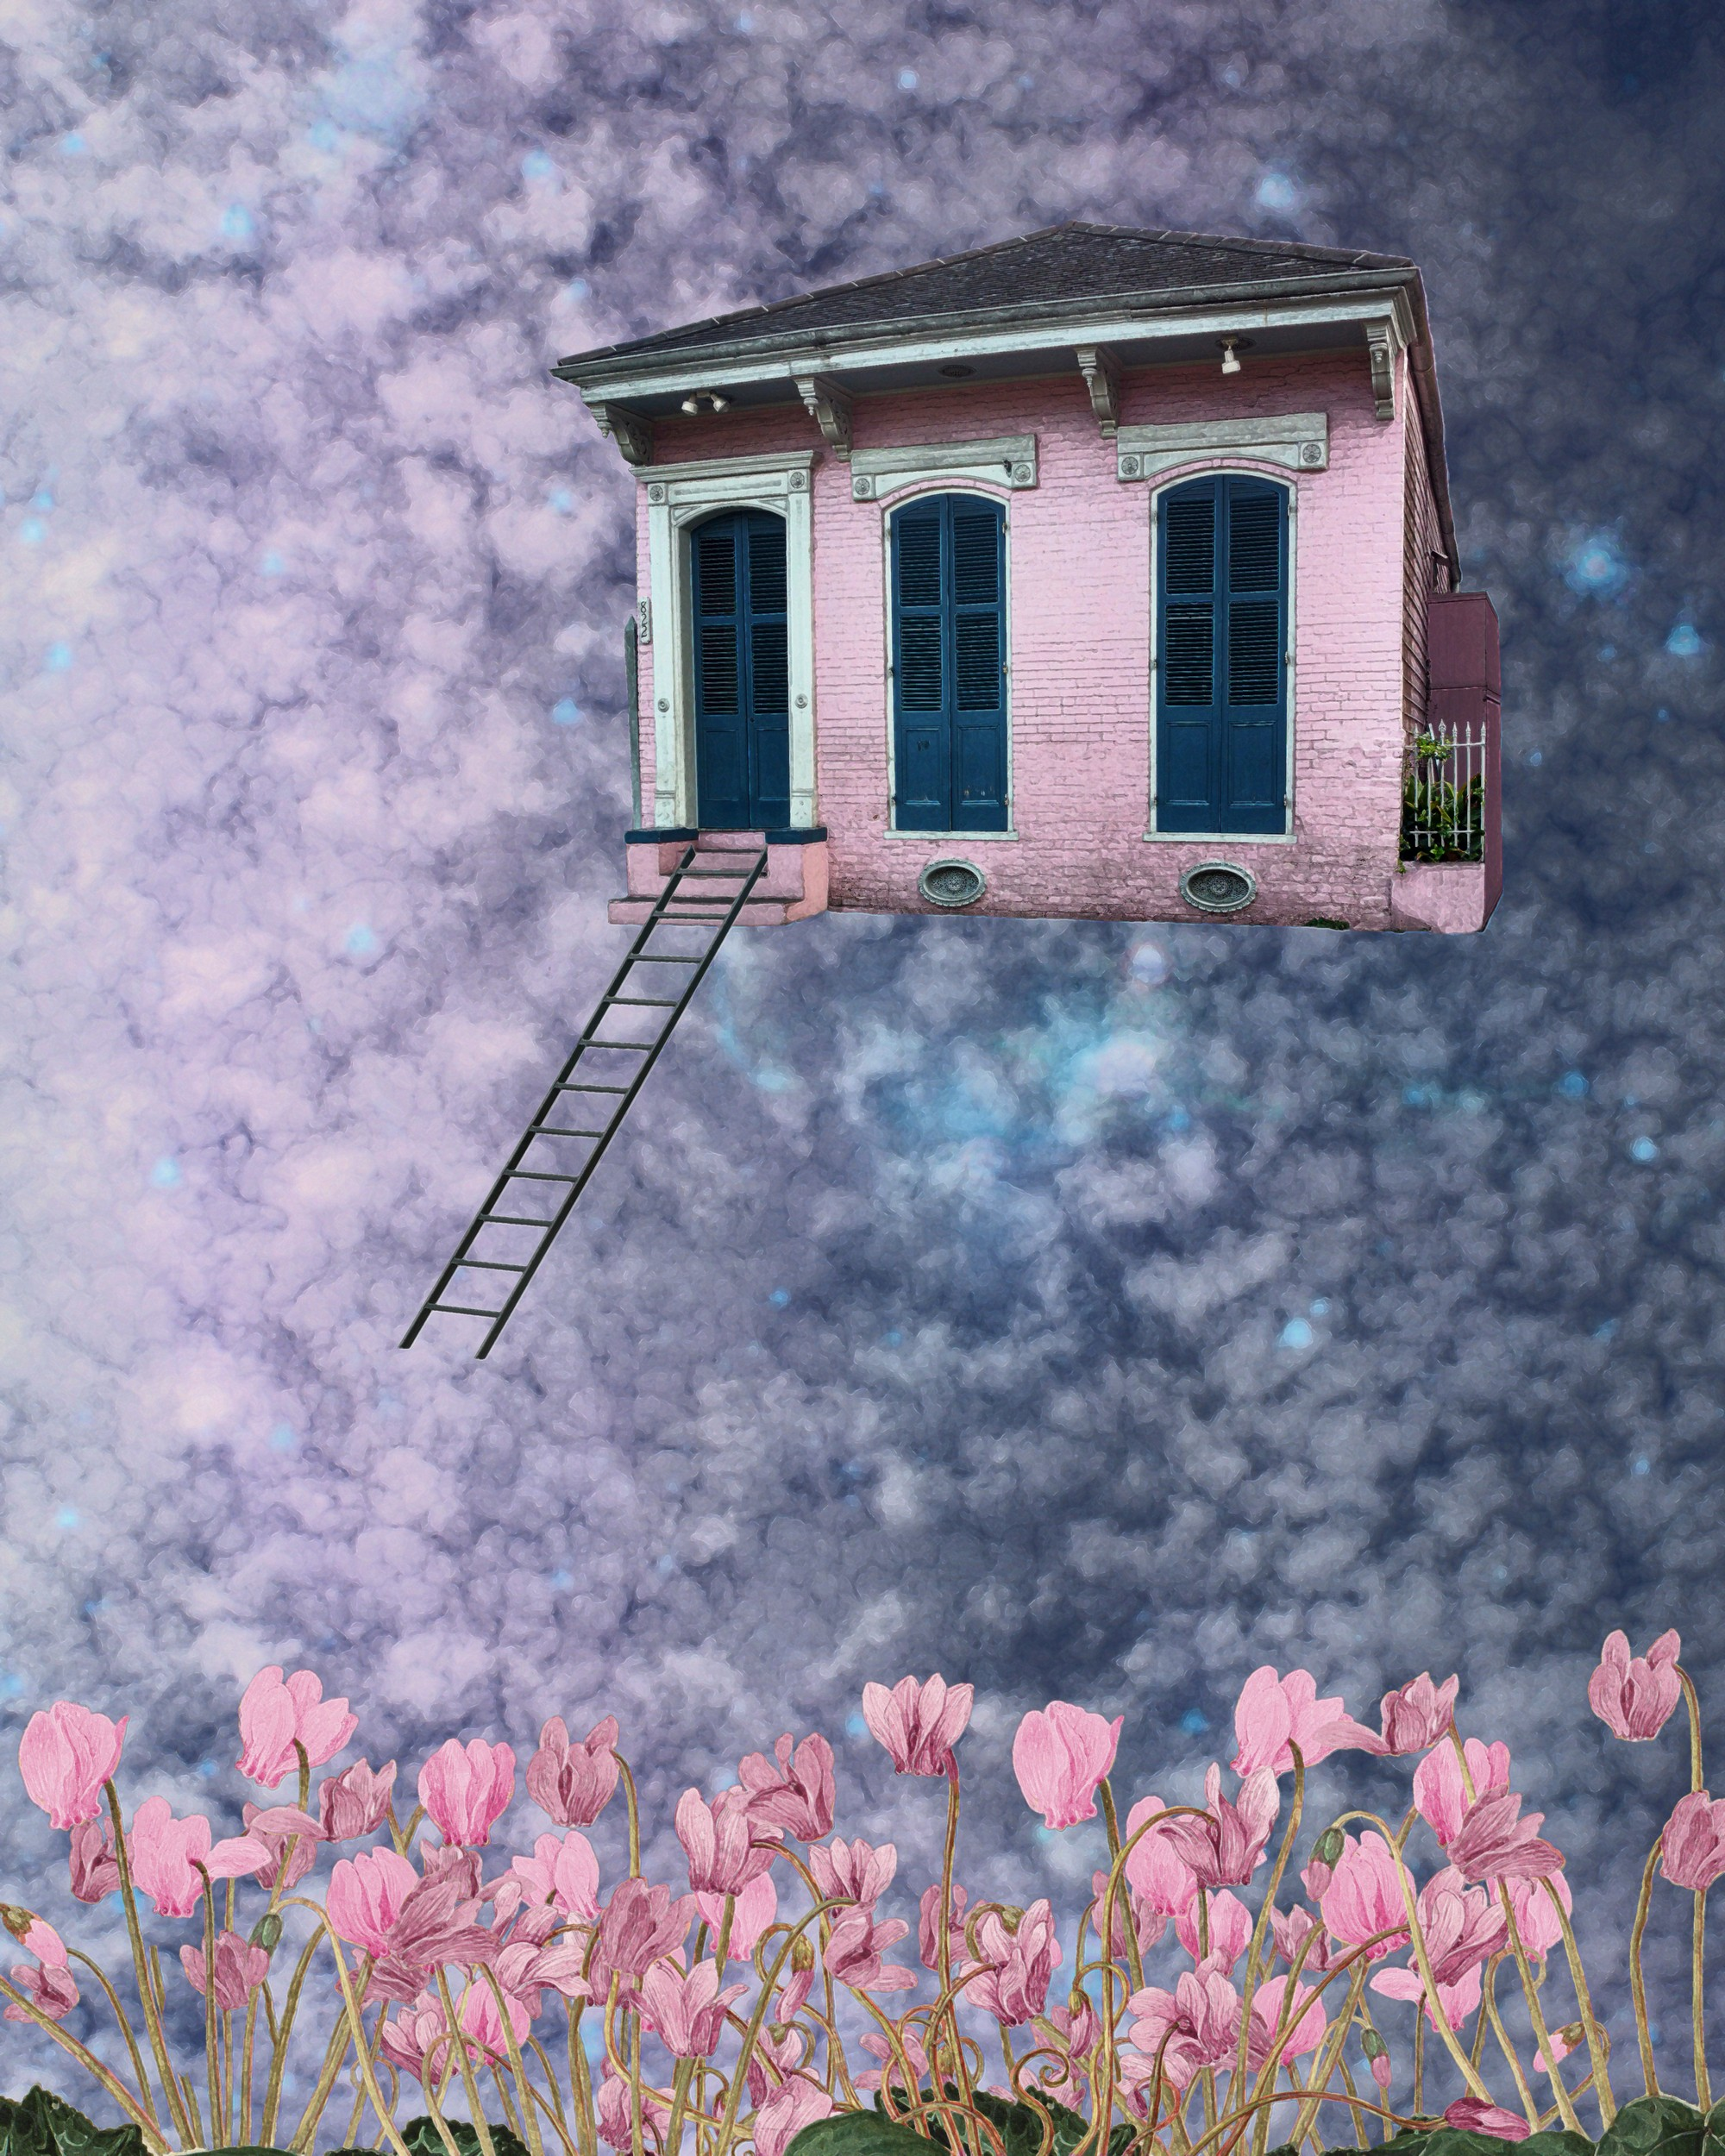 Dream Cottage by Loveday Funck